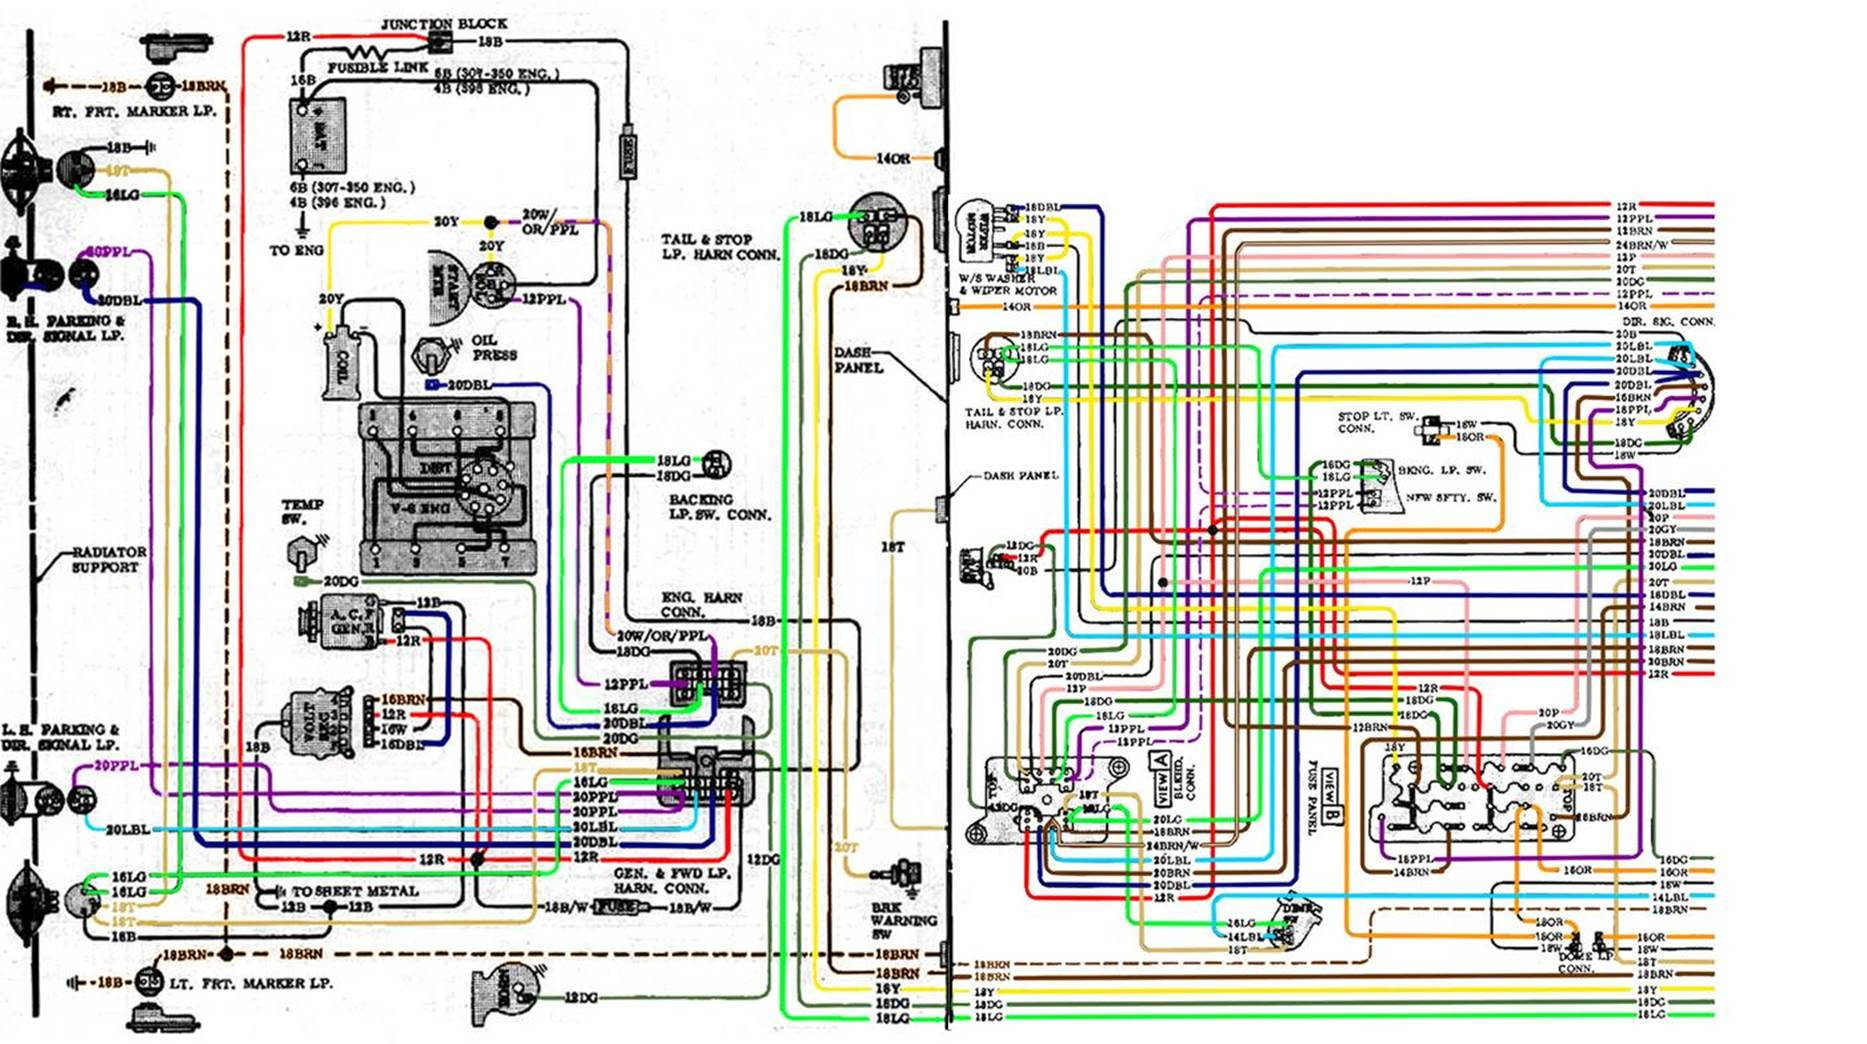 image002 67 72 chevy wiring diagram chevy wiring schematics at mifinder.co